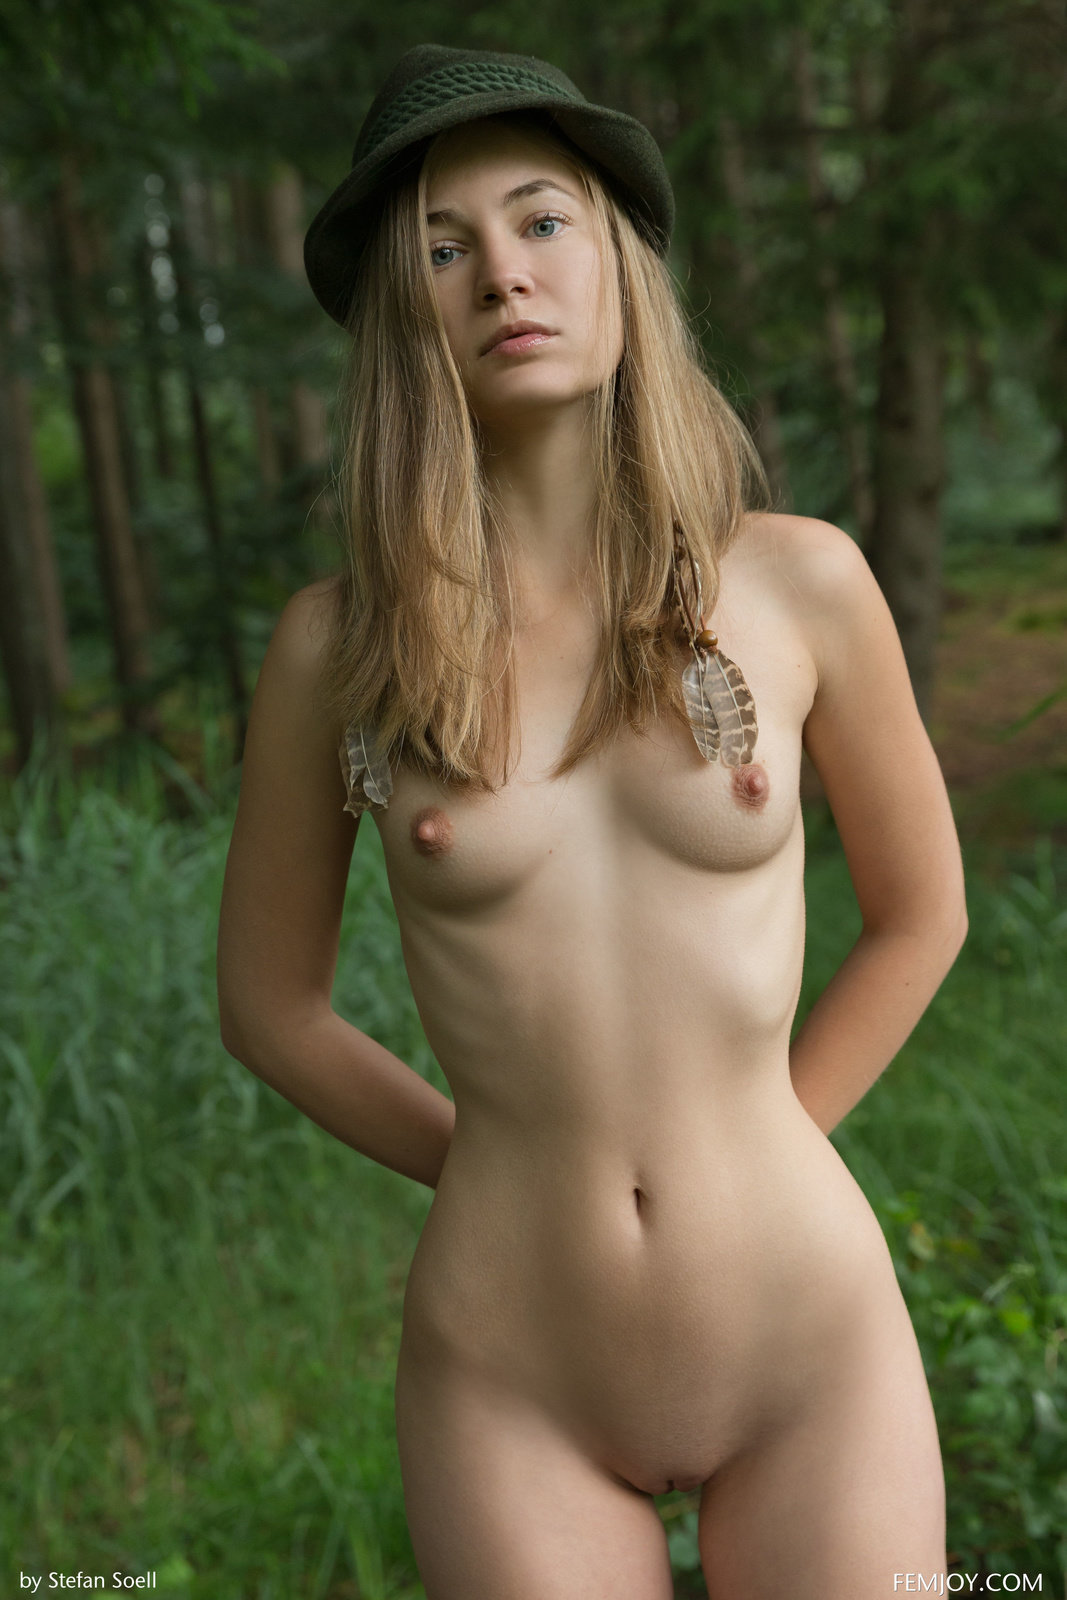 Nastya H In Muse By Femjoy 16 Photos  Erotic Beauties-9521